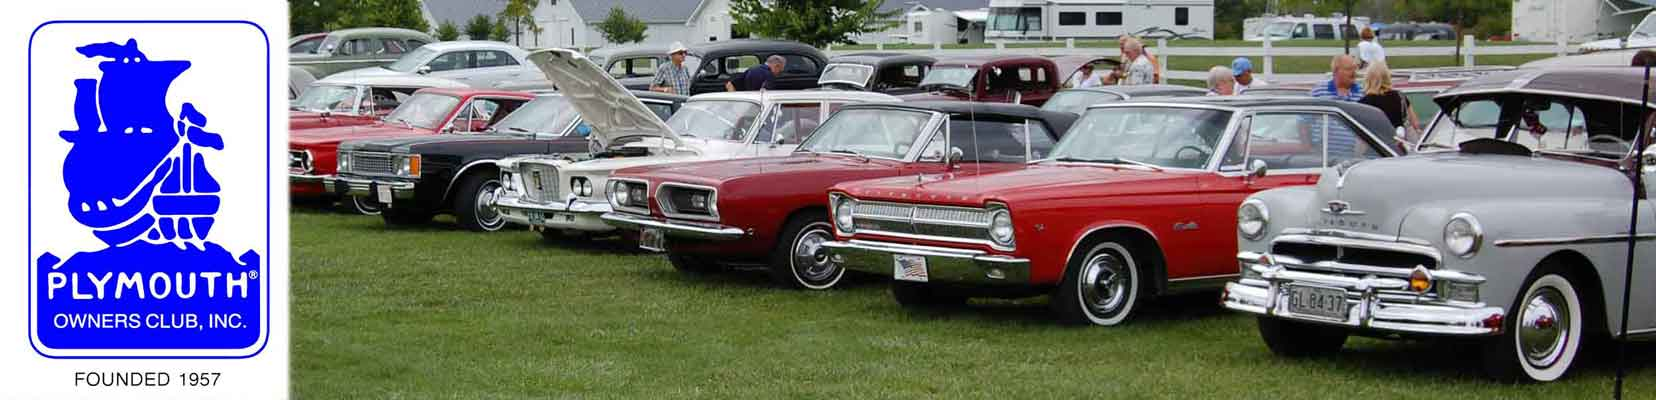 Plymouth Owners Club